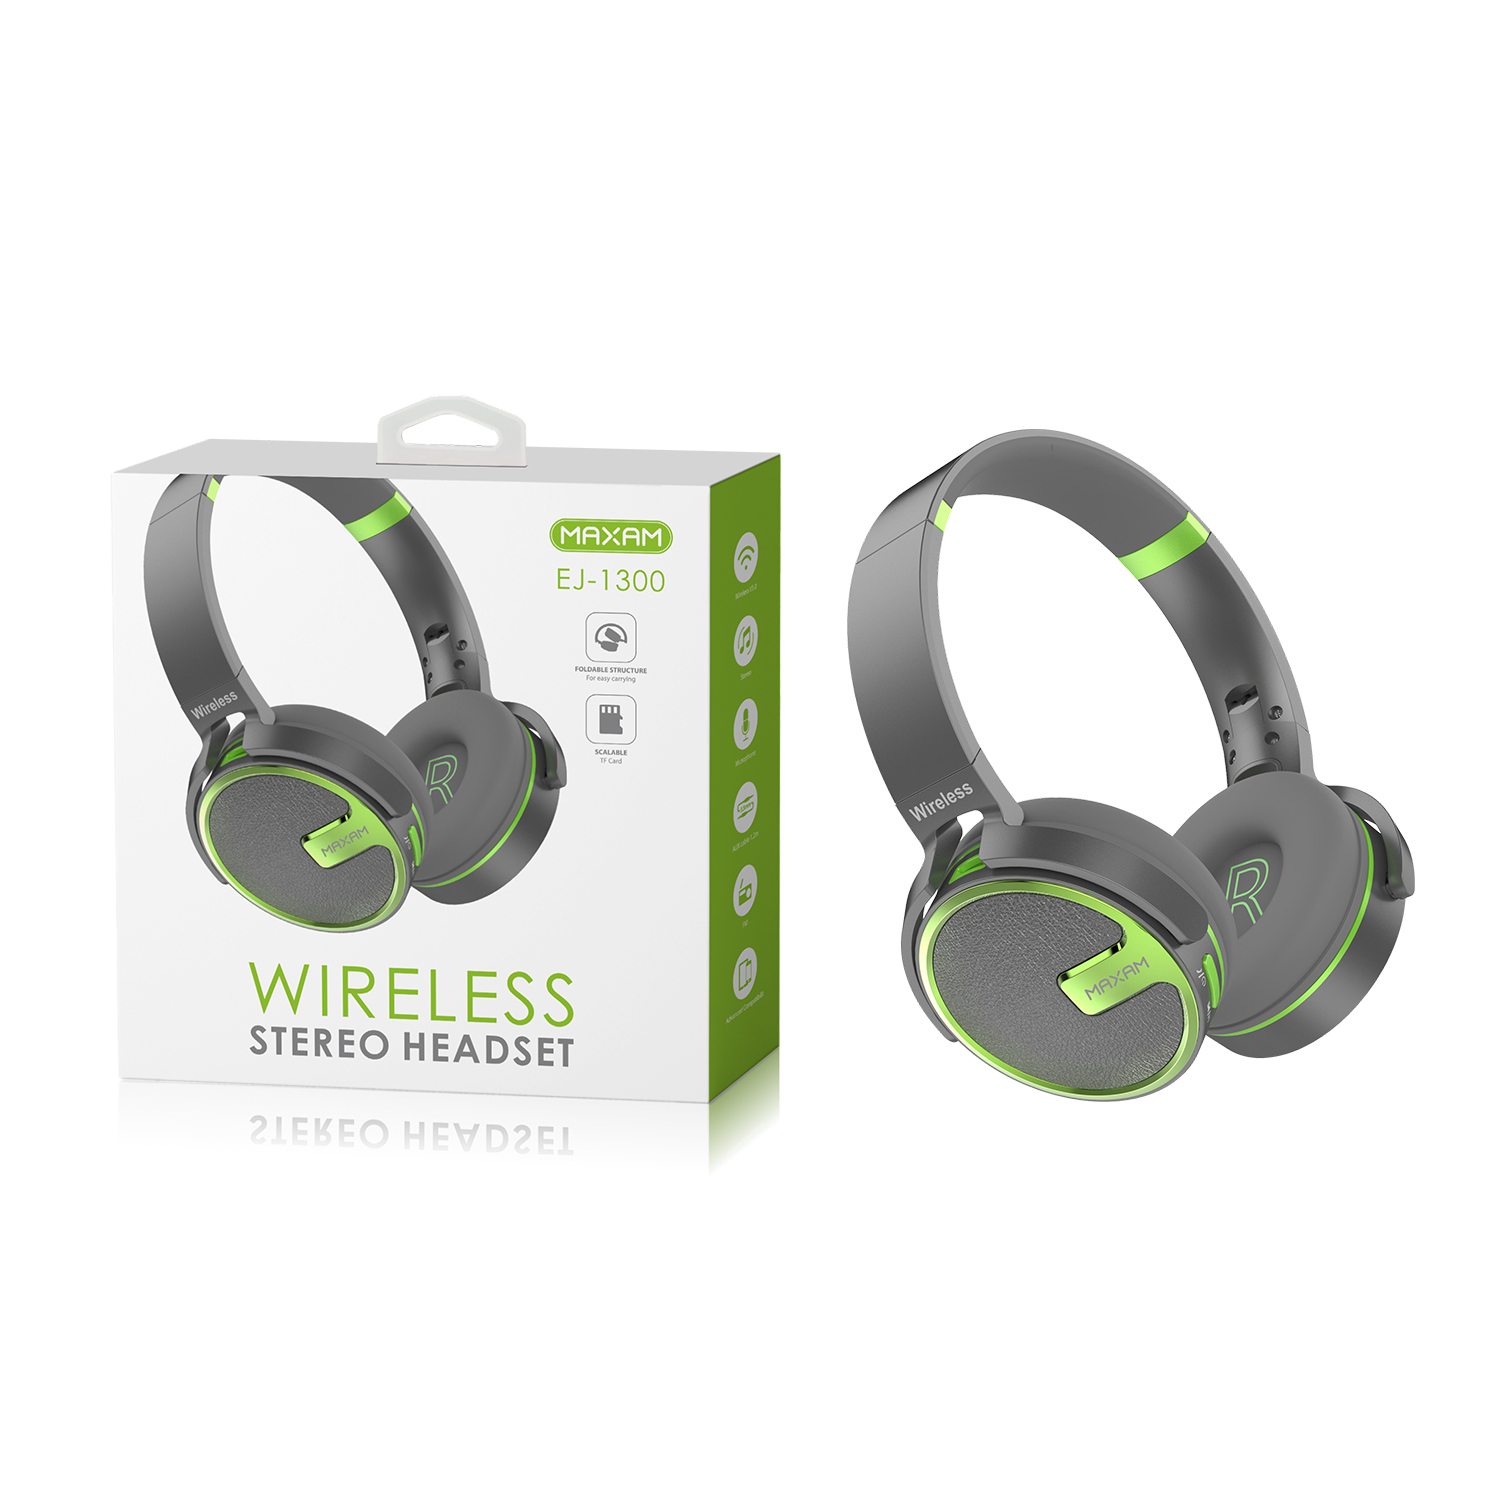 EJ-1300Green Wireless stereo